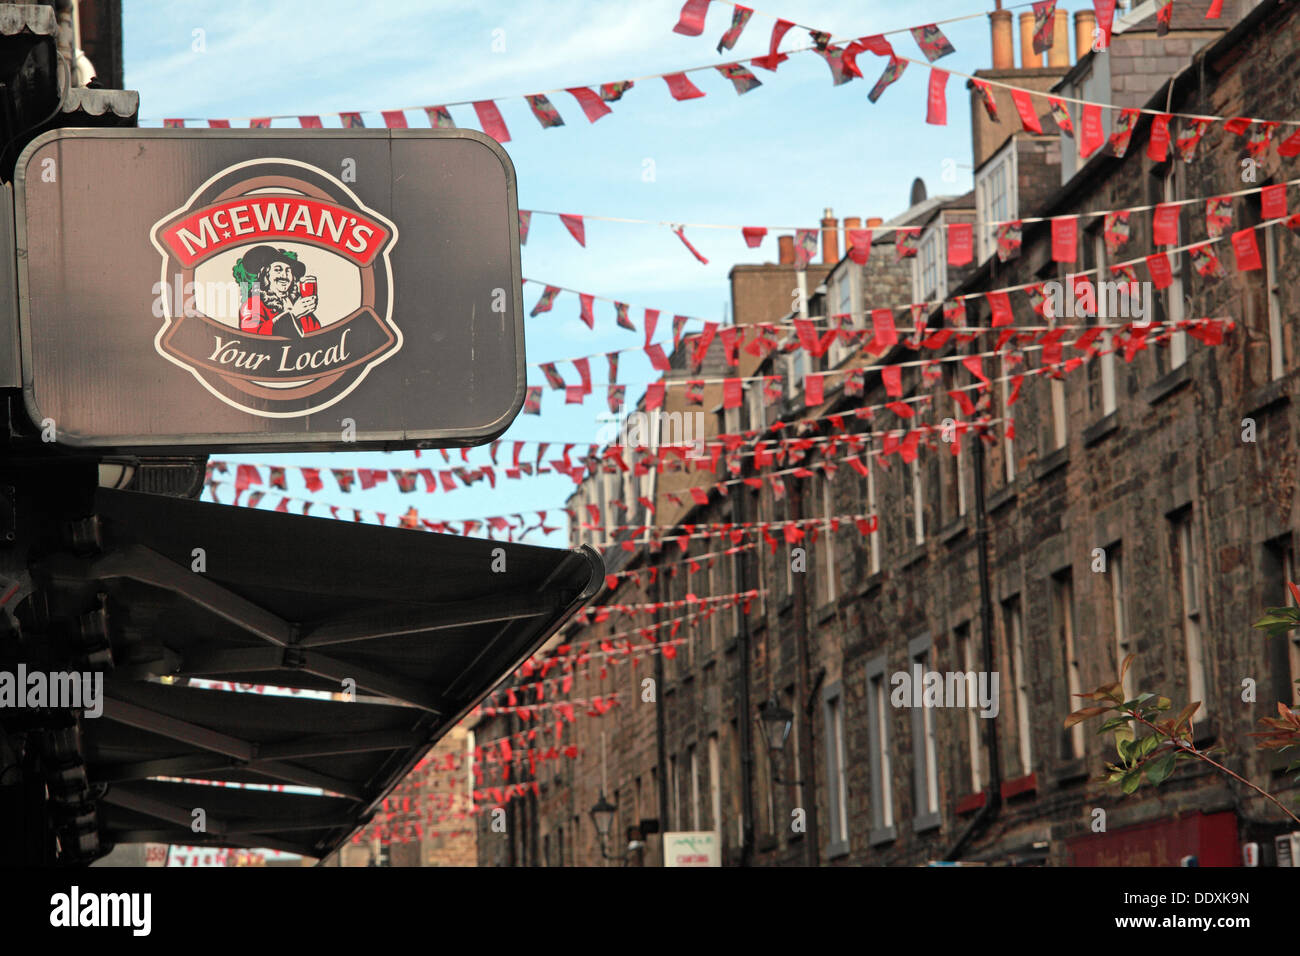 Rose Street,Edinburgh,Scotland,UK a place to drink,eat,party - McEwans Your Local - Stock Image